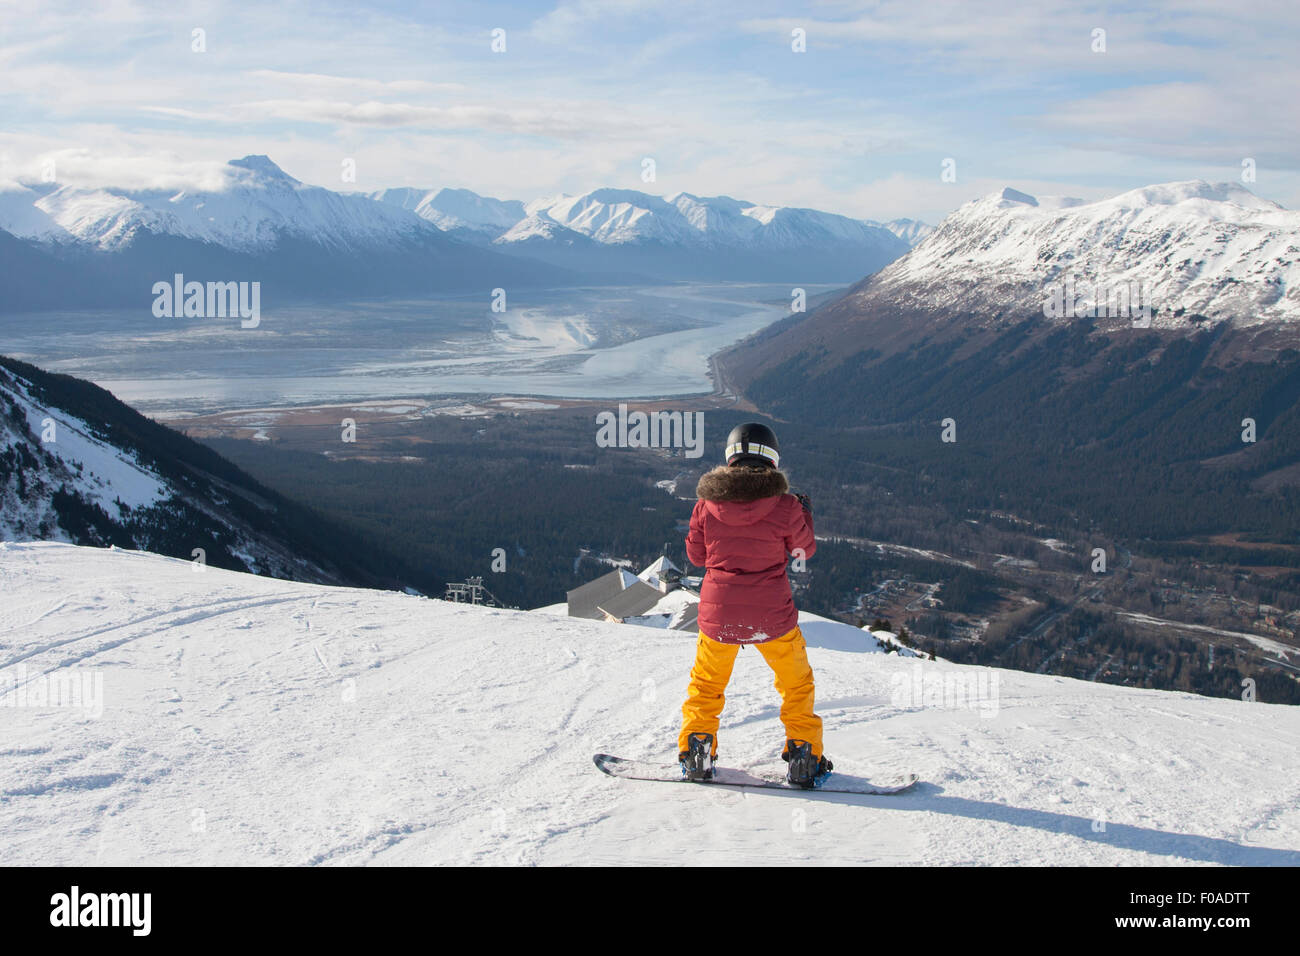 Young woman on snowboard, Girdwood, Anchorage, Alaska - Stock Image